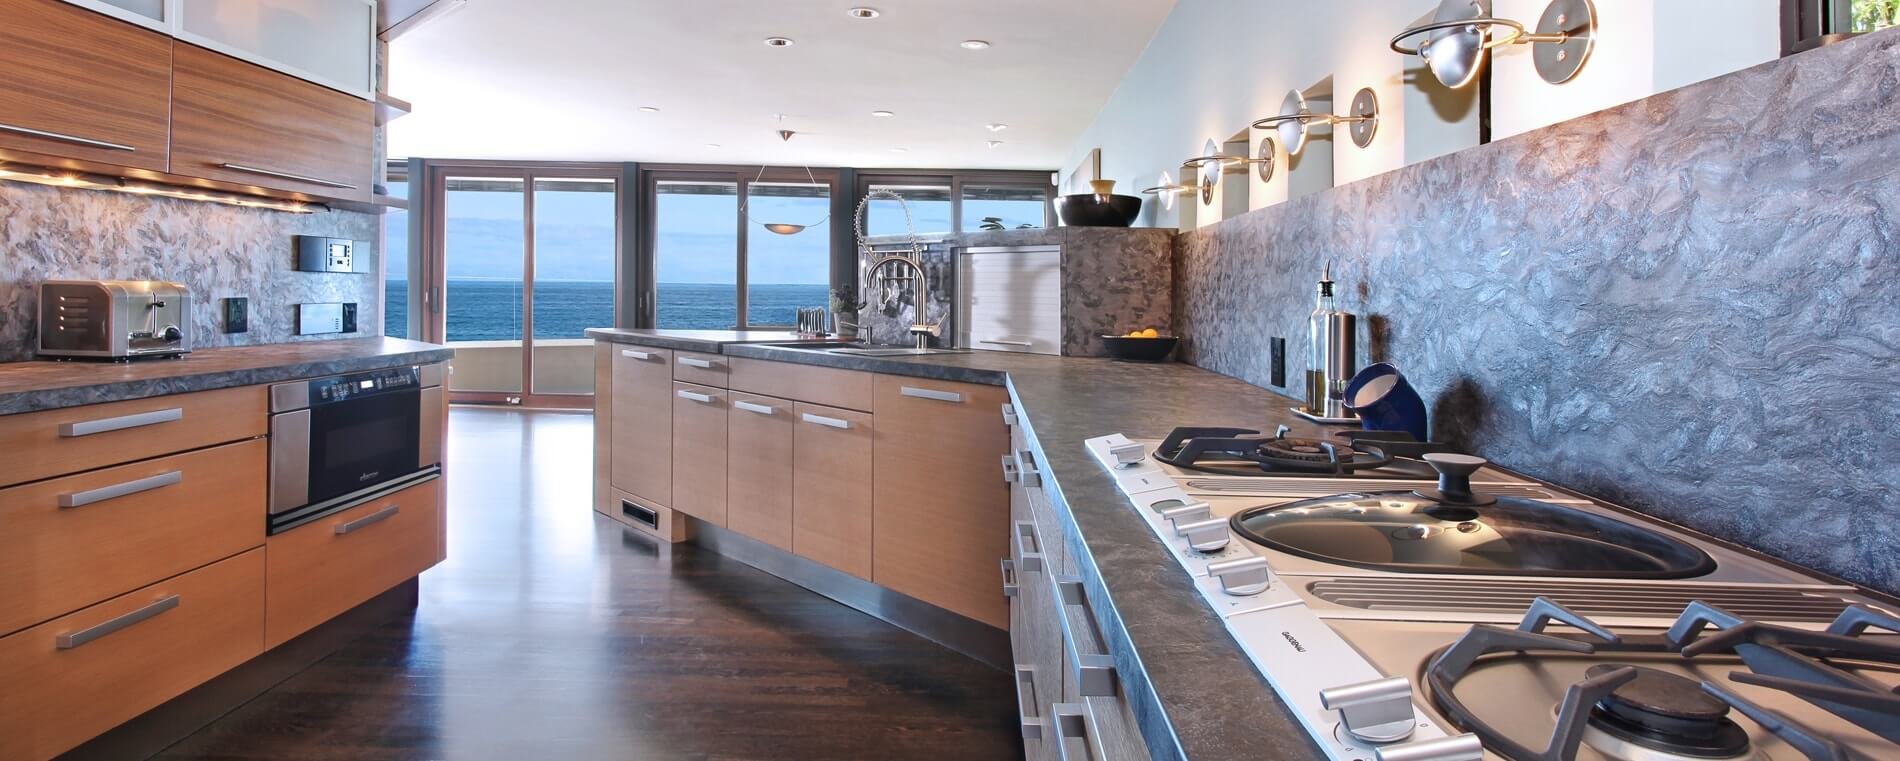 Le Gourmet Kitchen - Orange County Kitchen Remodeling